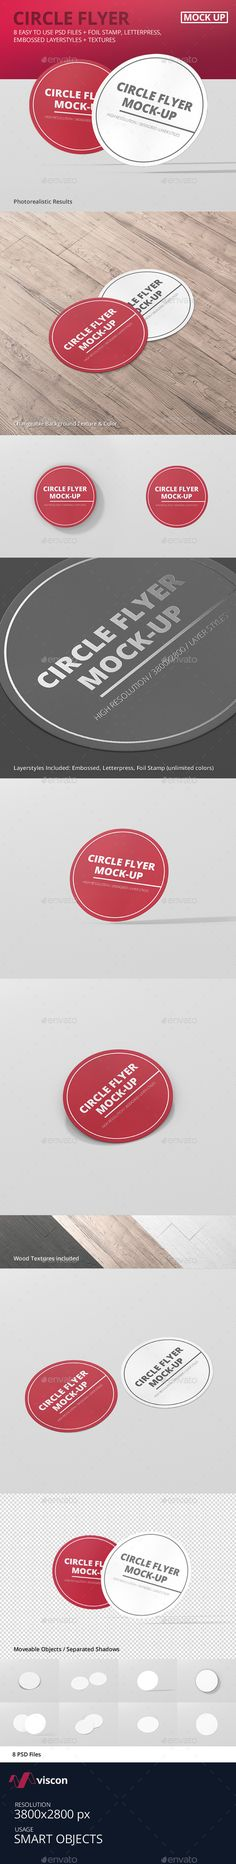 Circle Flyer Mockup #graphicdesign #stationary #branding #identity #flyer #design